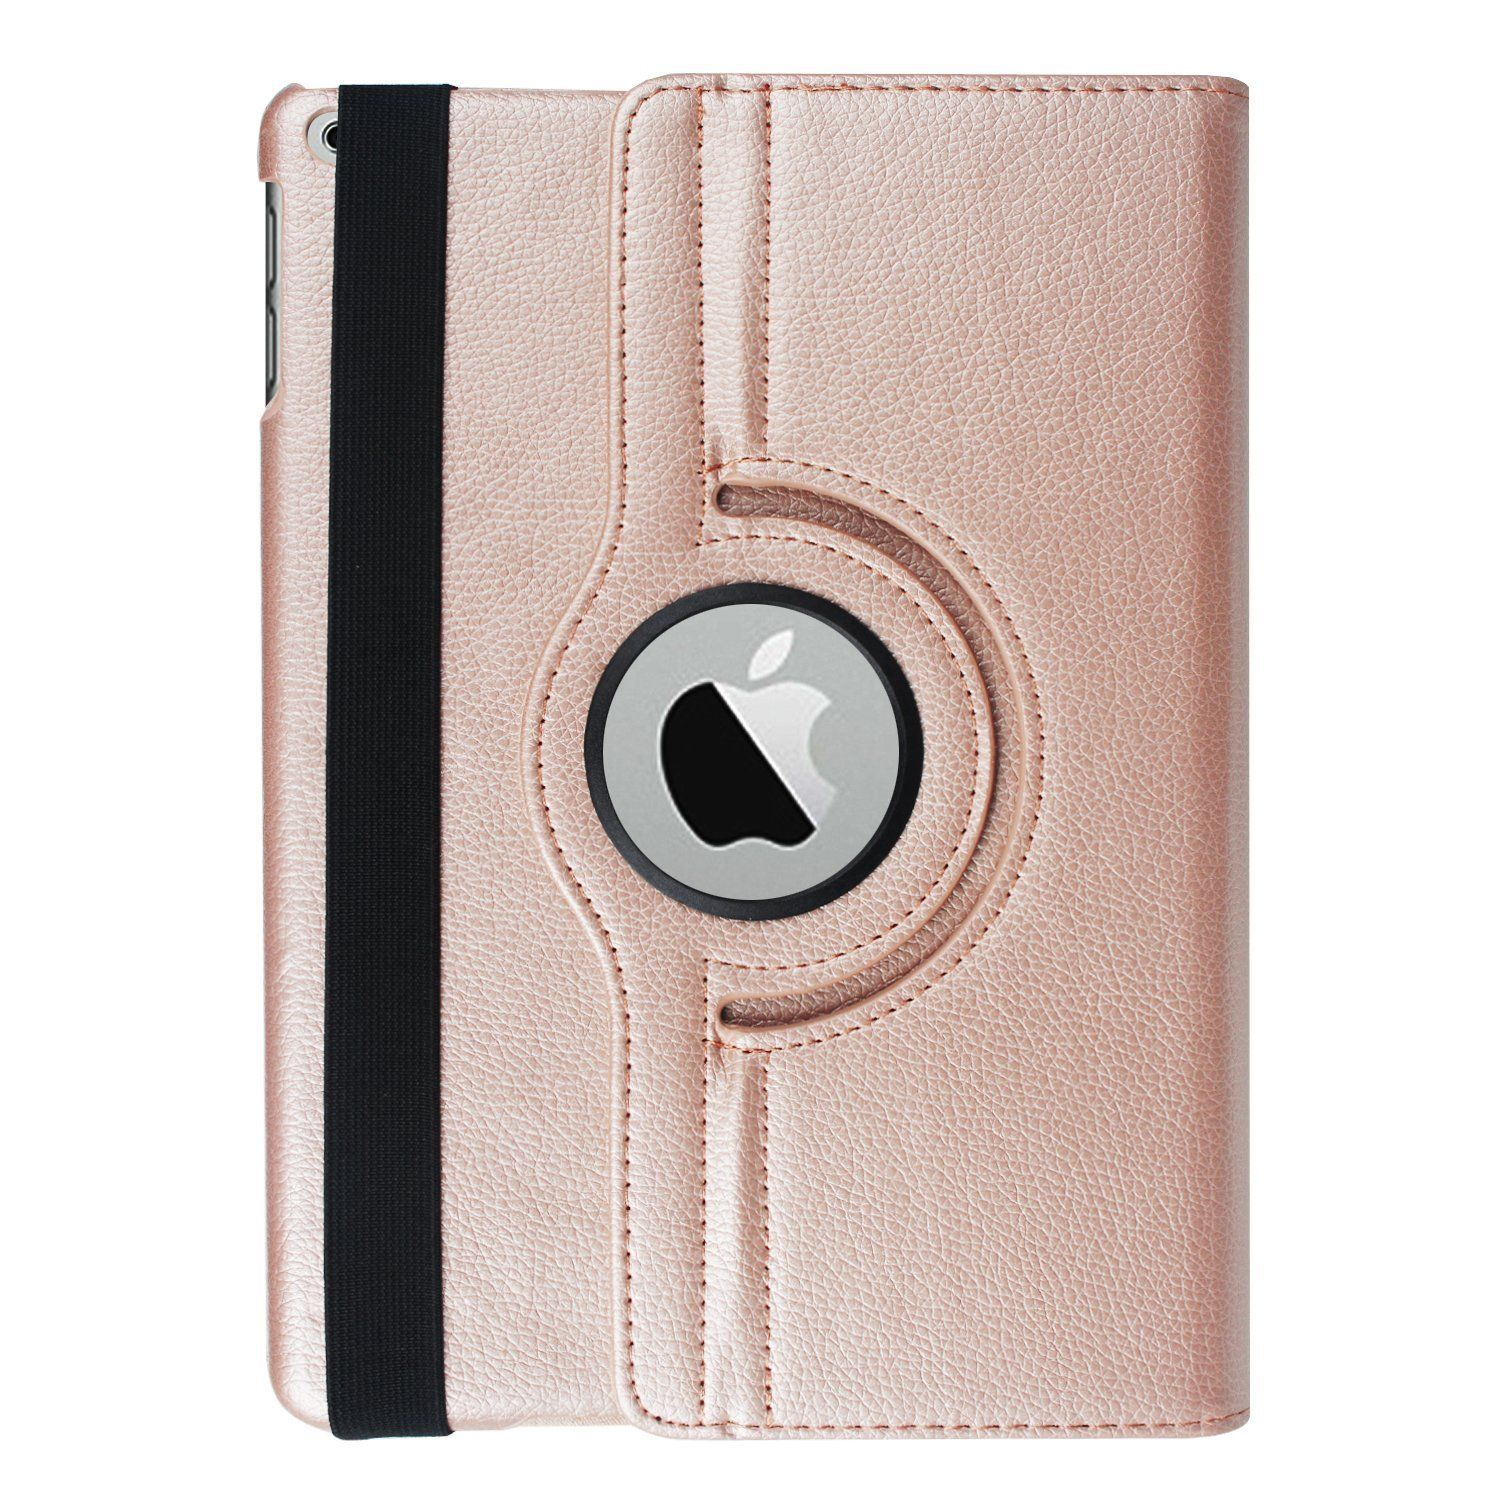 Custodia-per-Apple-iPad-Pro-2017-iPad-Air-3-10-5-Smart-Cover-Case-Custodia-Protettiva miniatura 94